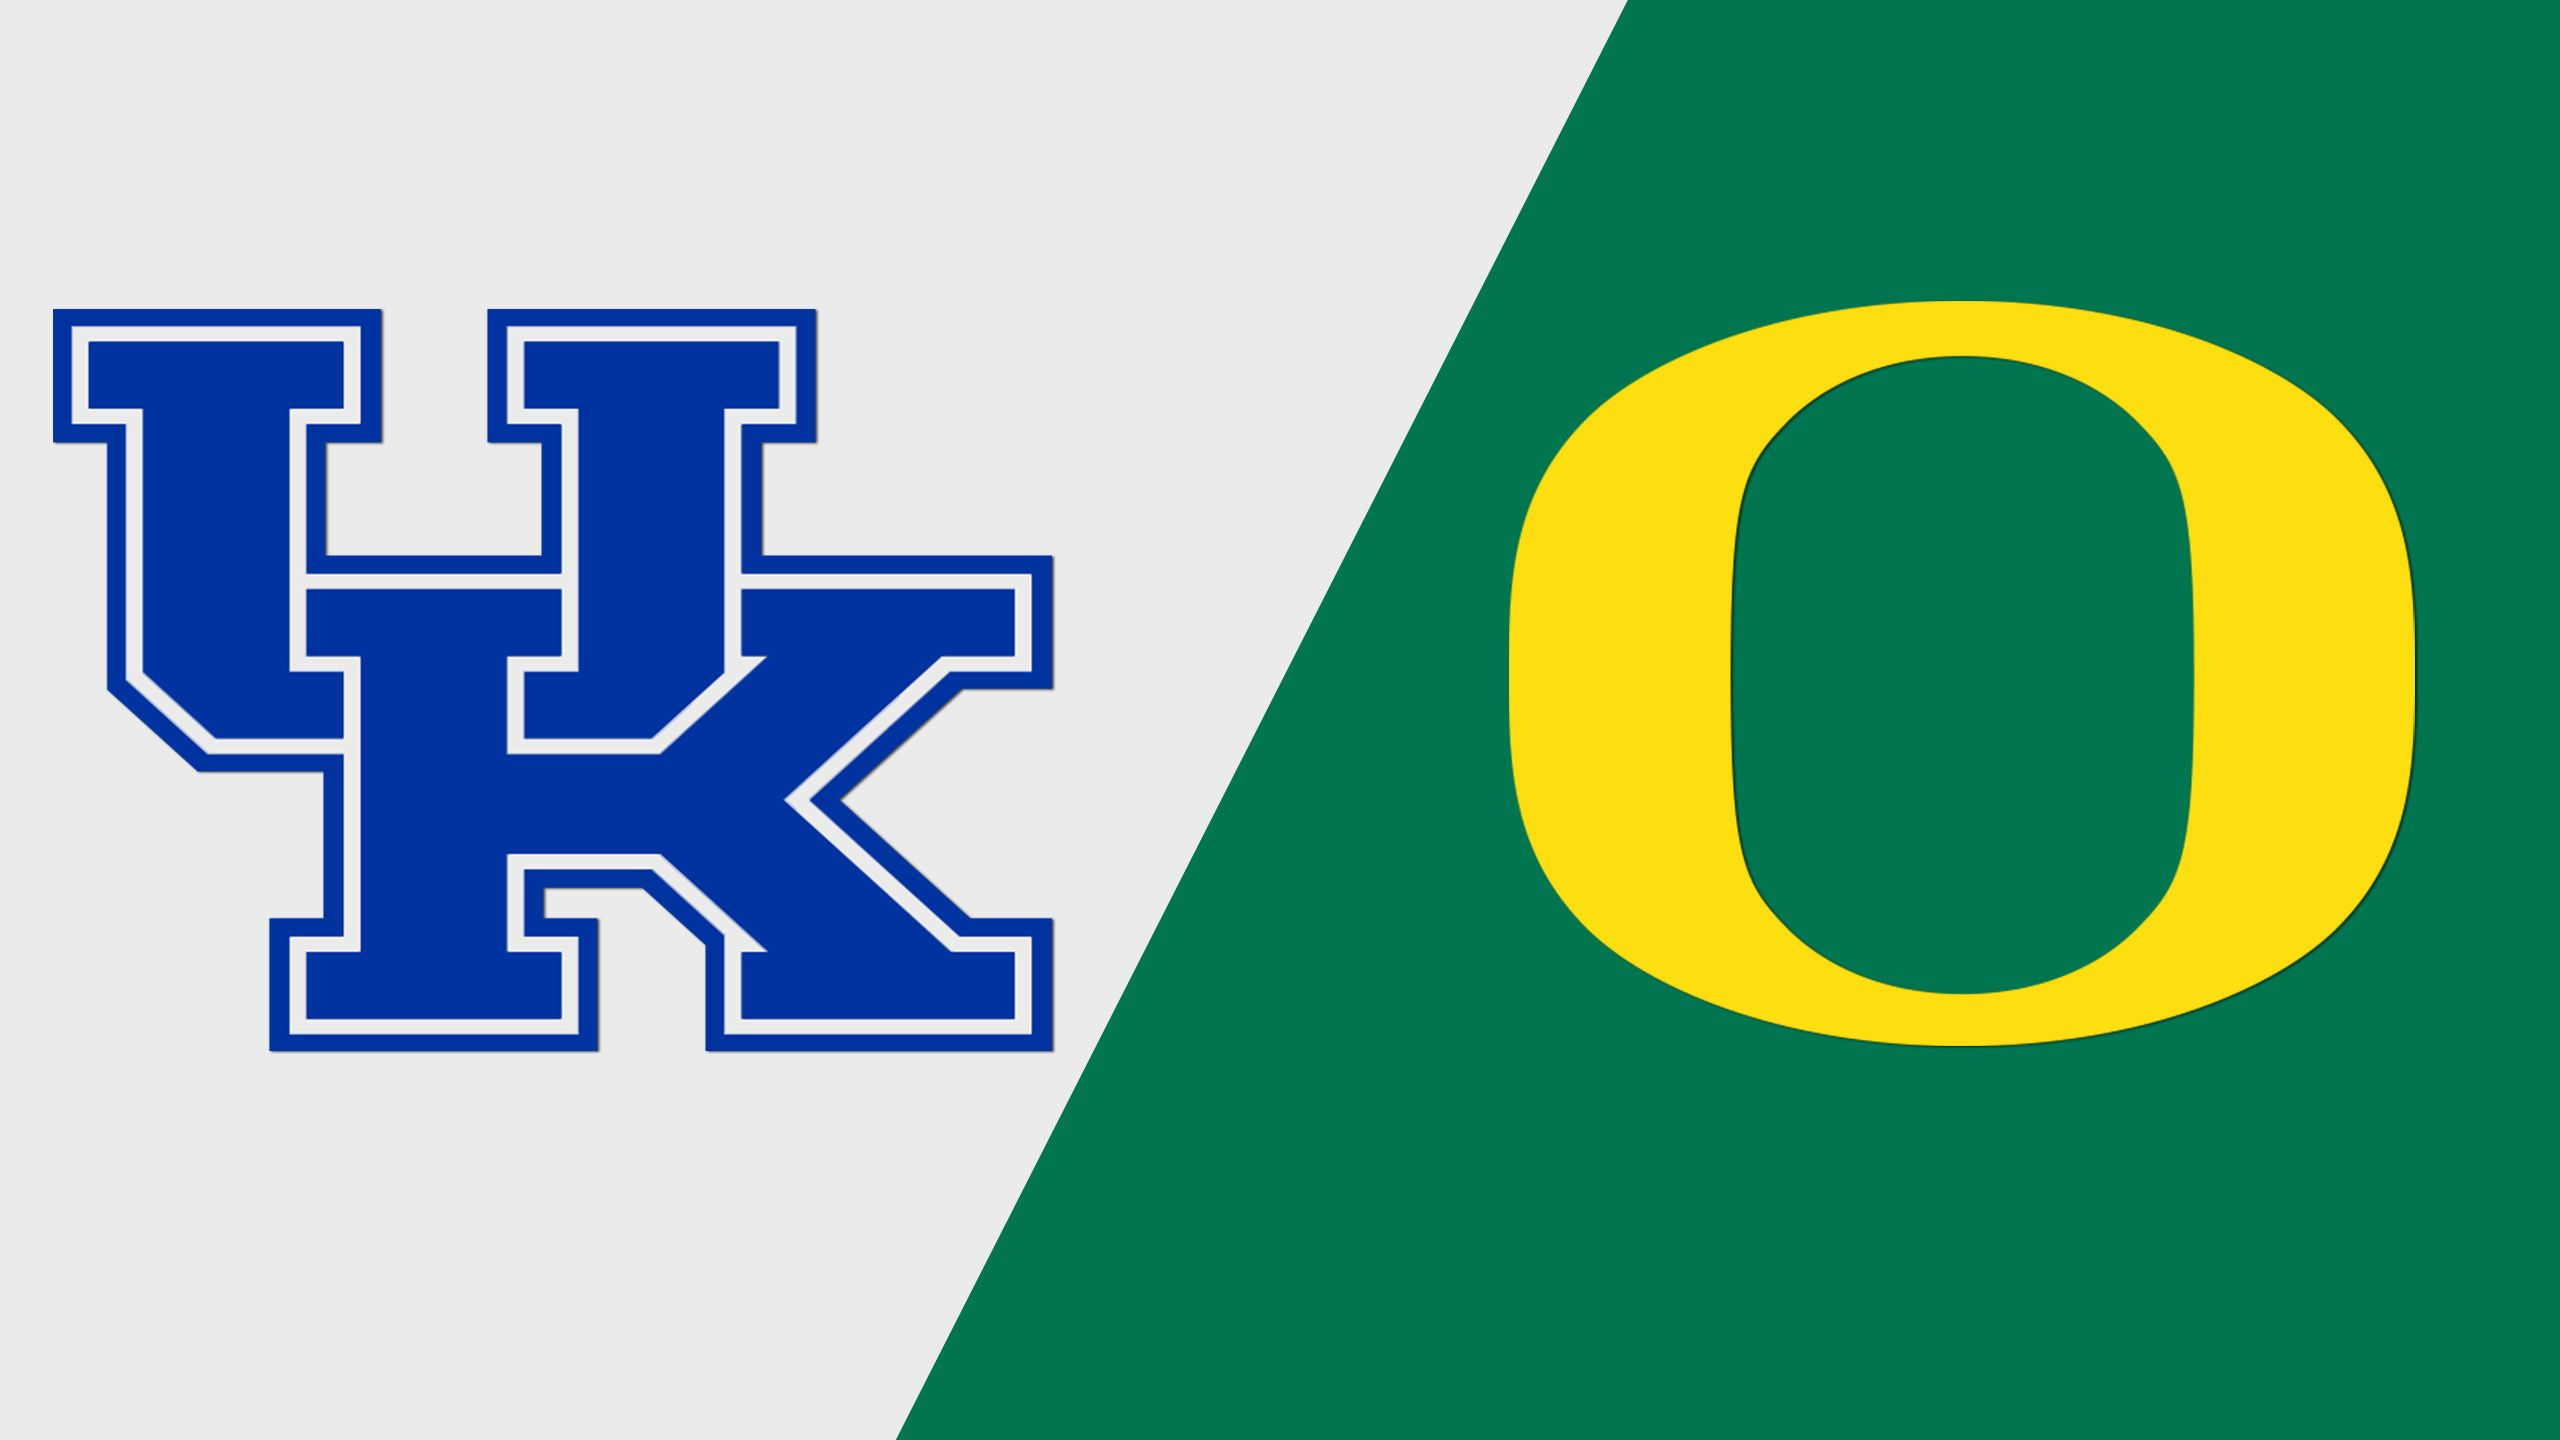 #16 Kentucky vs. #1 Oregon (Site 3 / Game 3) (NCAA Softball Championship)